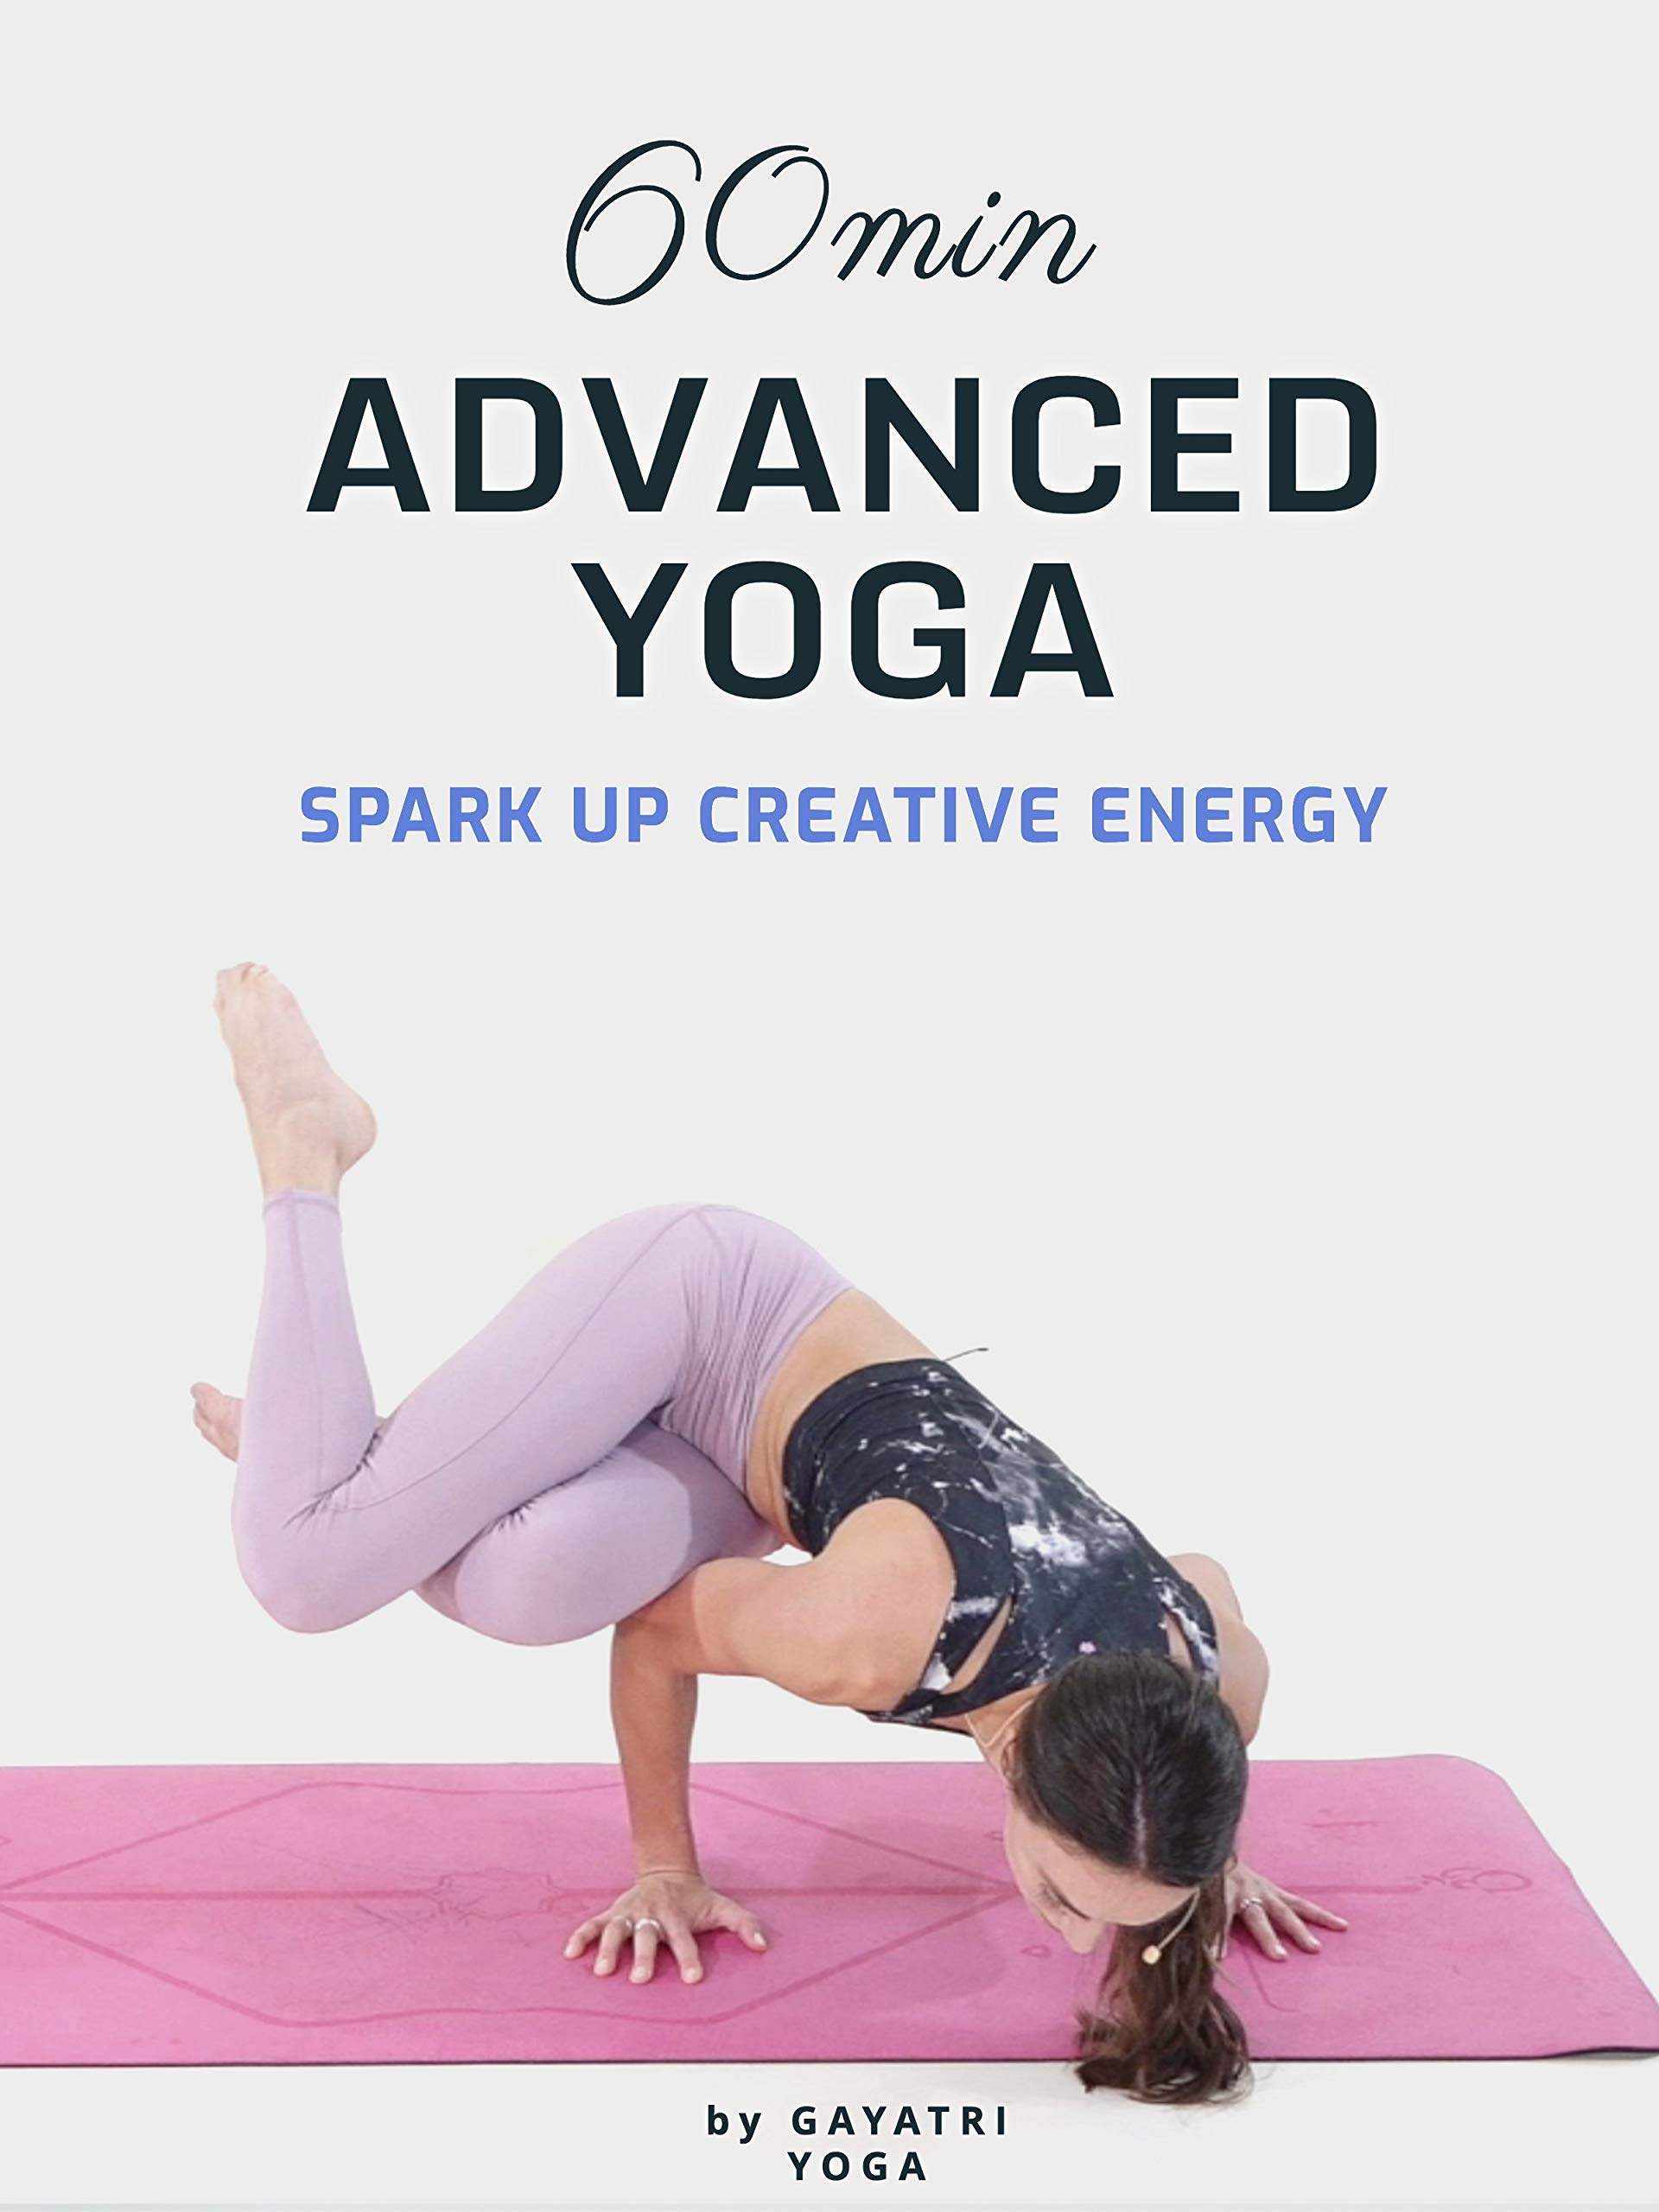 60 Min Advanced Yoga - Spark Up Creative Energy - Gayatri Yoga